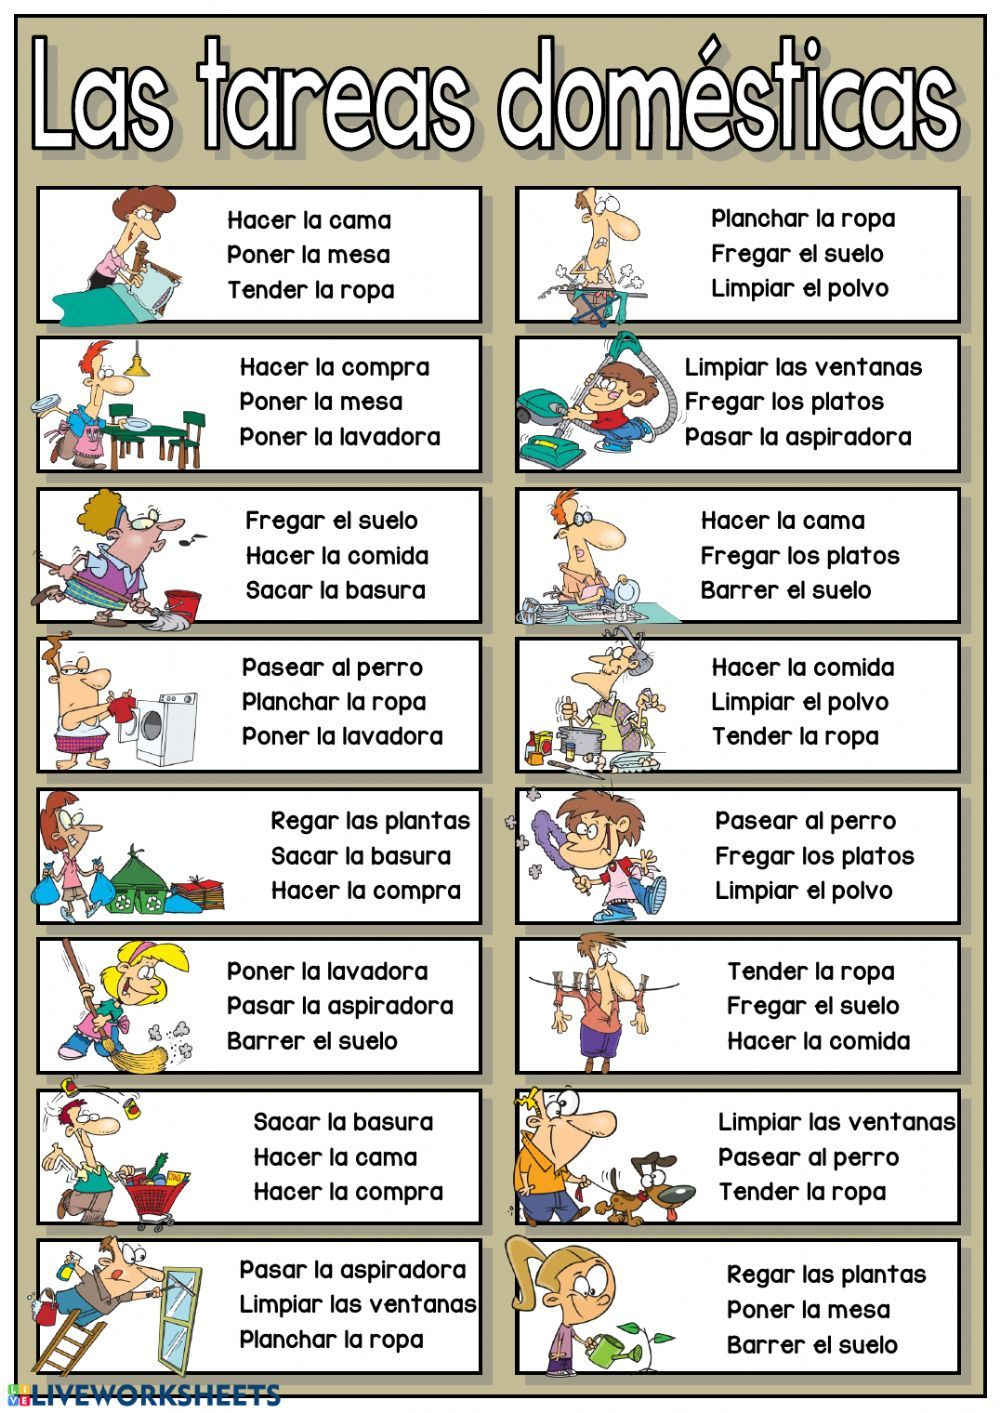 Las Tareas Domesticas Interactive And Downloadable Worksheet You